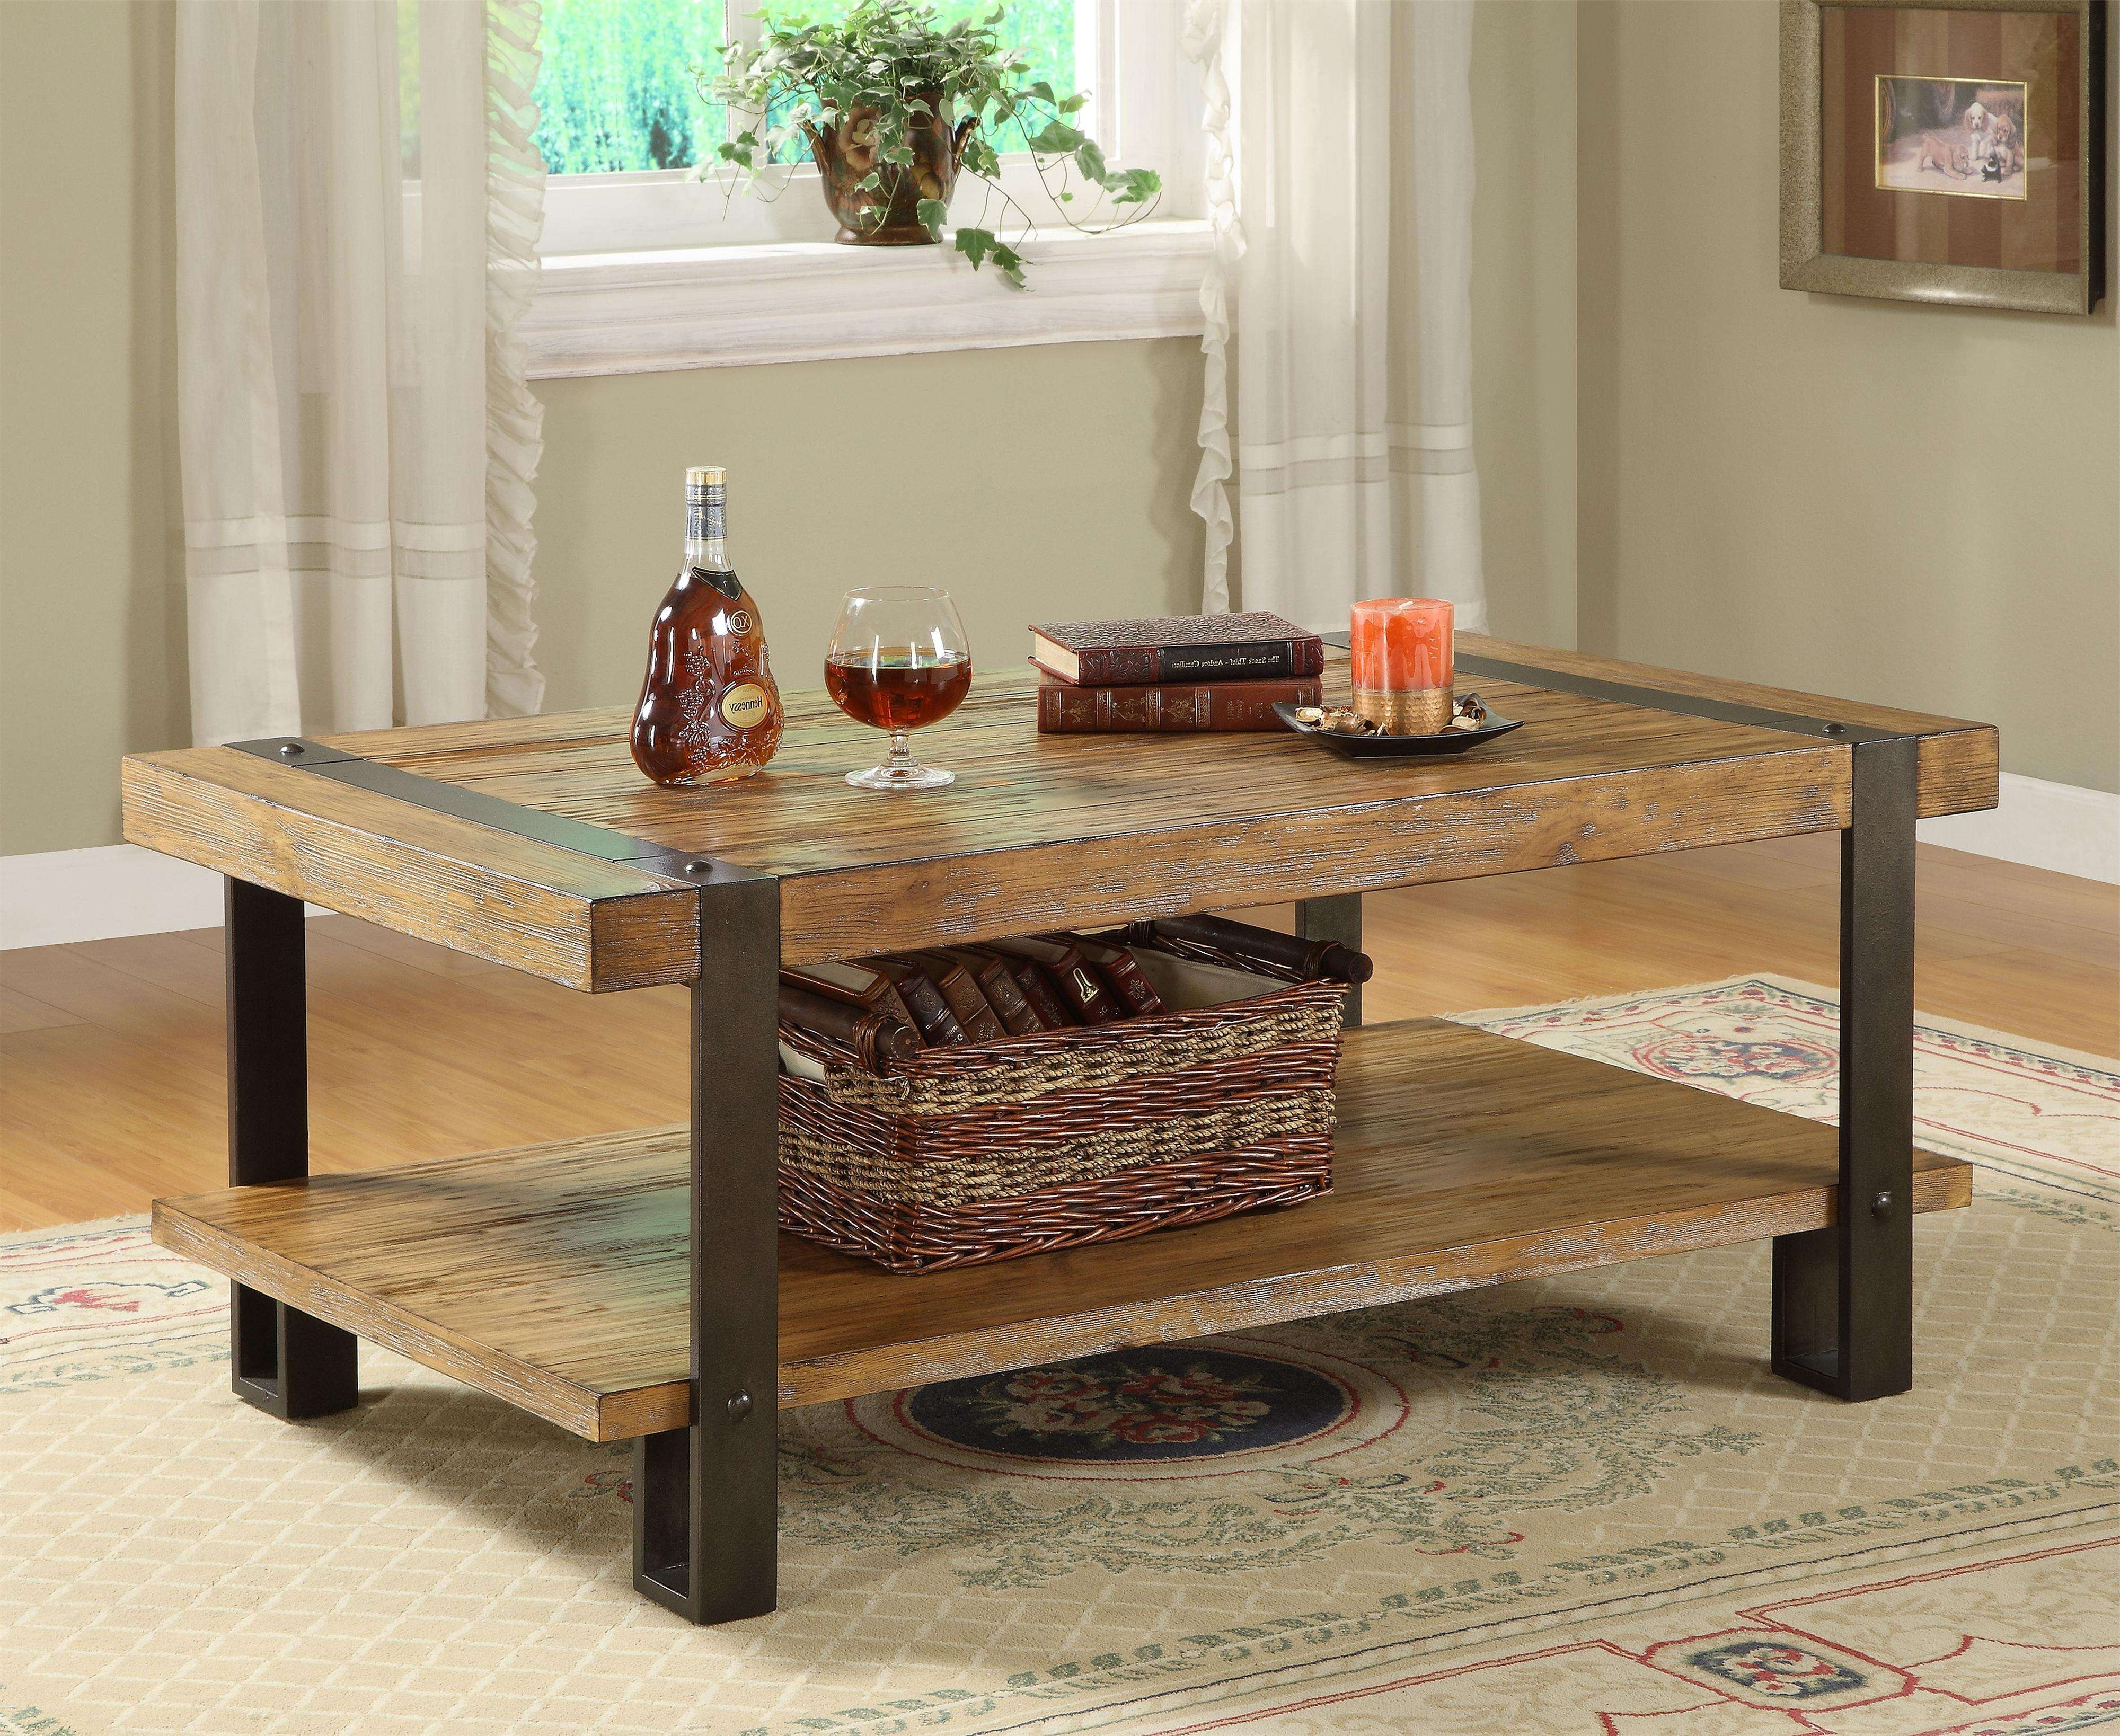 Latest Square Wood Coffee Tables With Storage Regarding Old And Vintage High Low Square Wood Coffee Table With Shelves And (View 9 of 20)